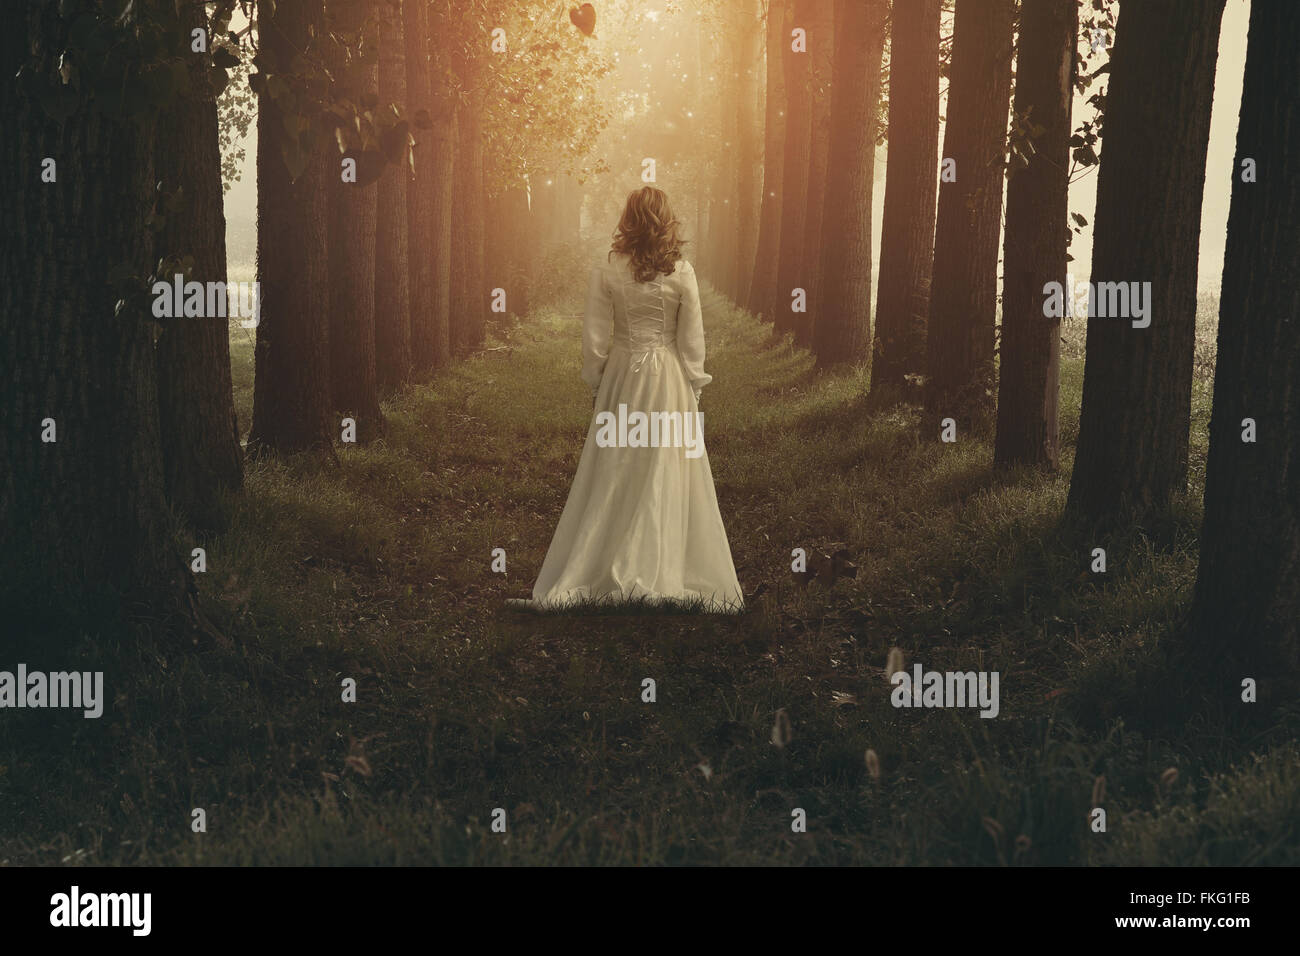 Woman with victorian dress in fairy and dreamy realm. Fantasy manipulation - Stock Image